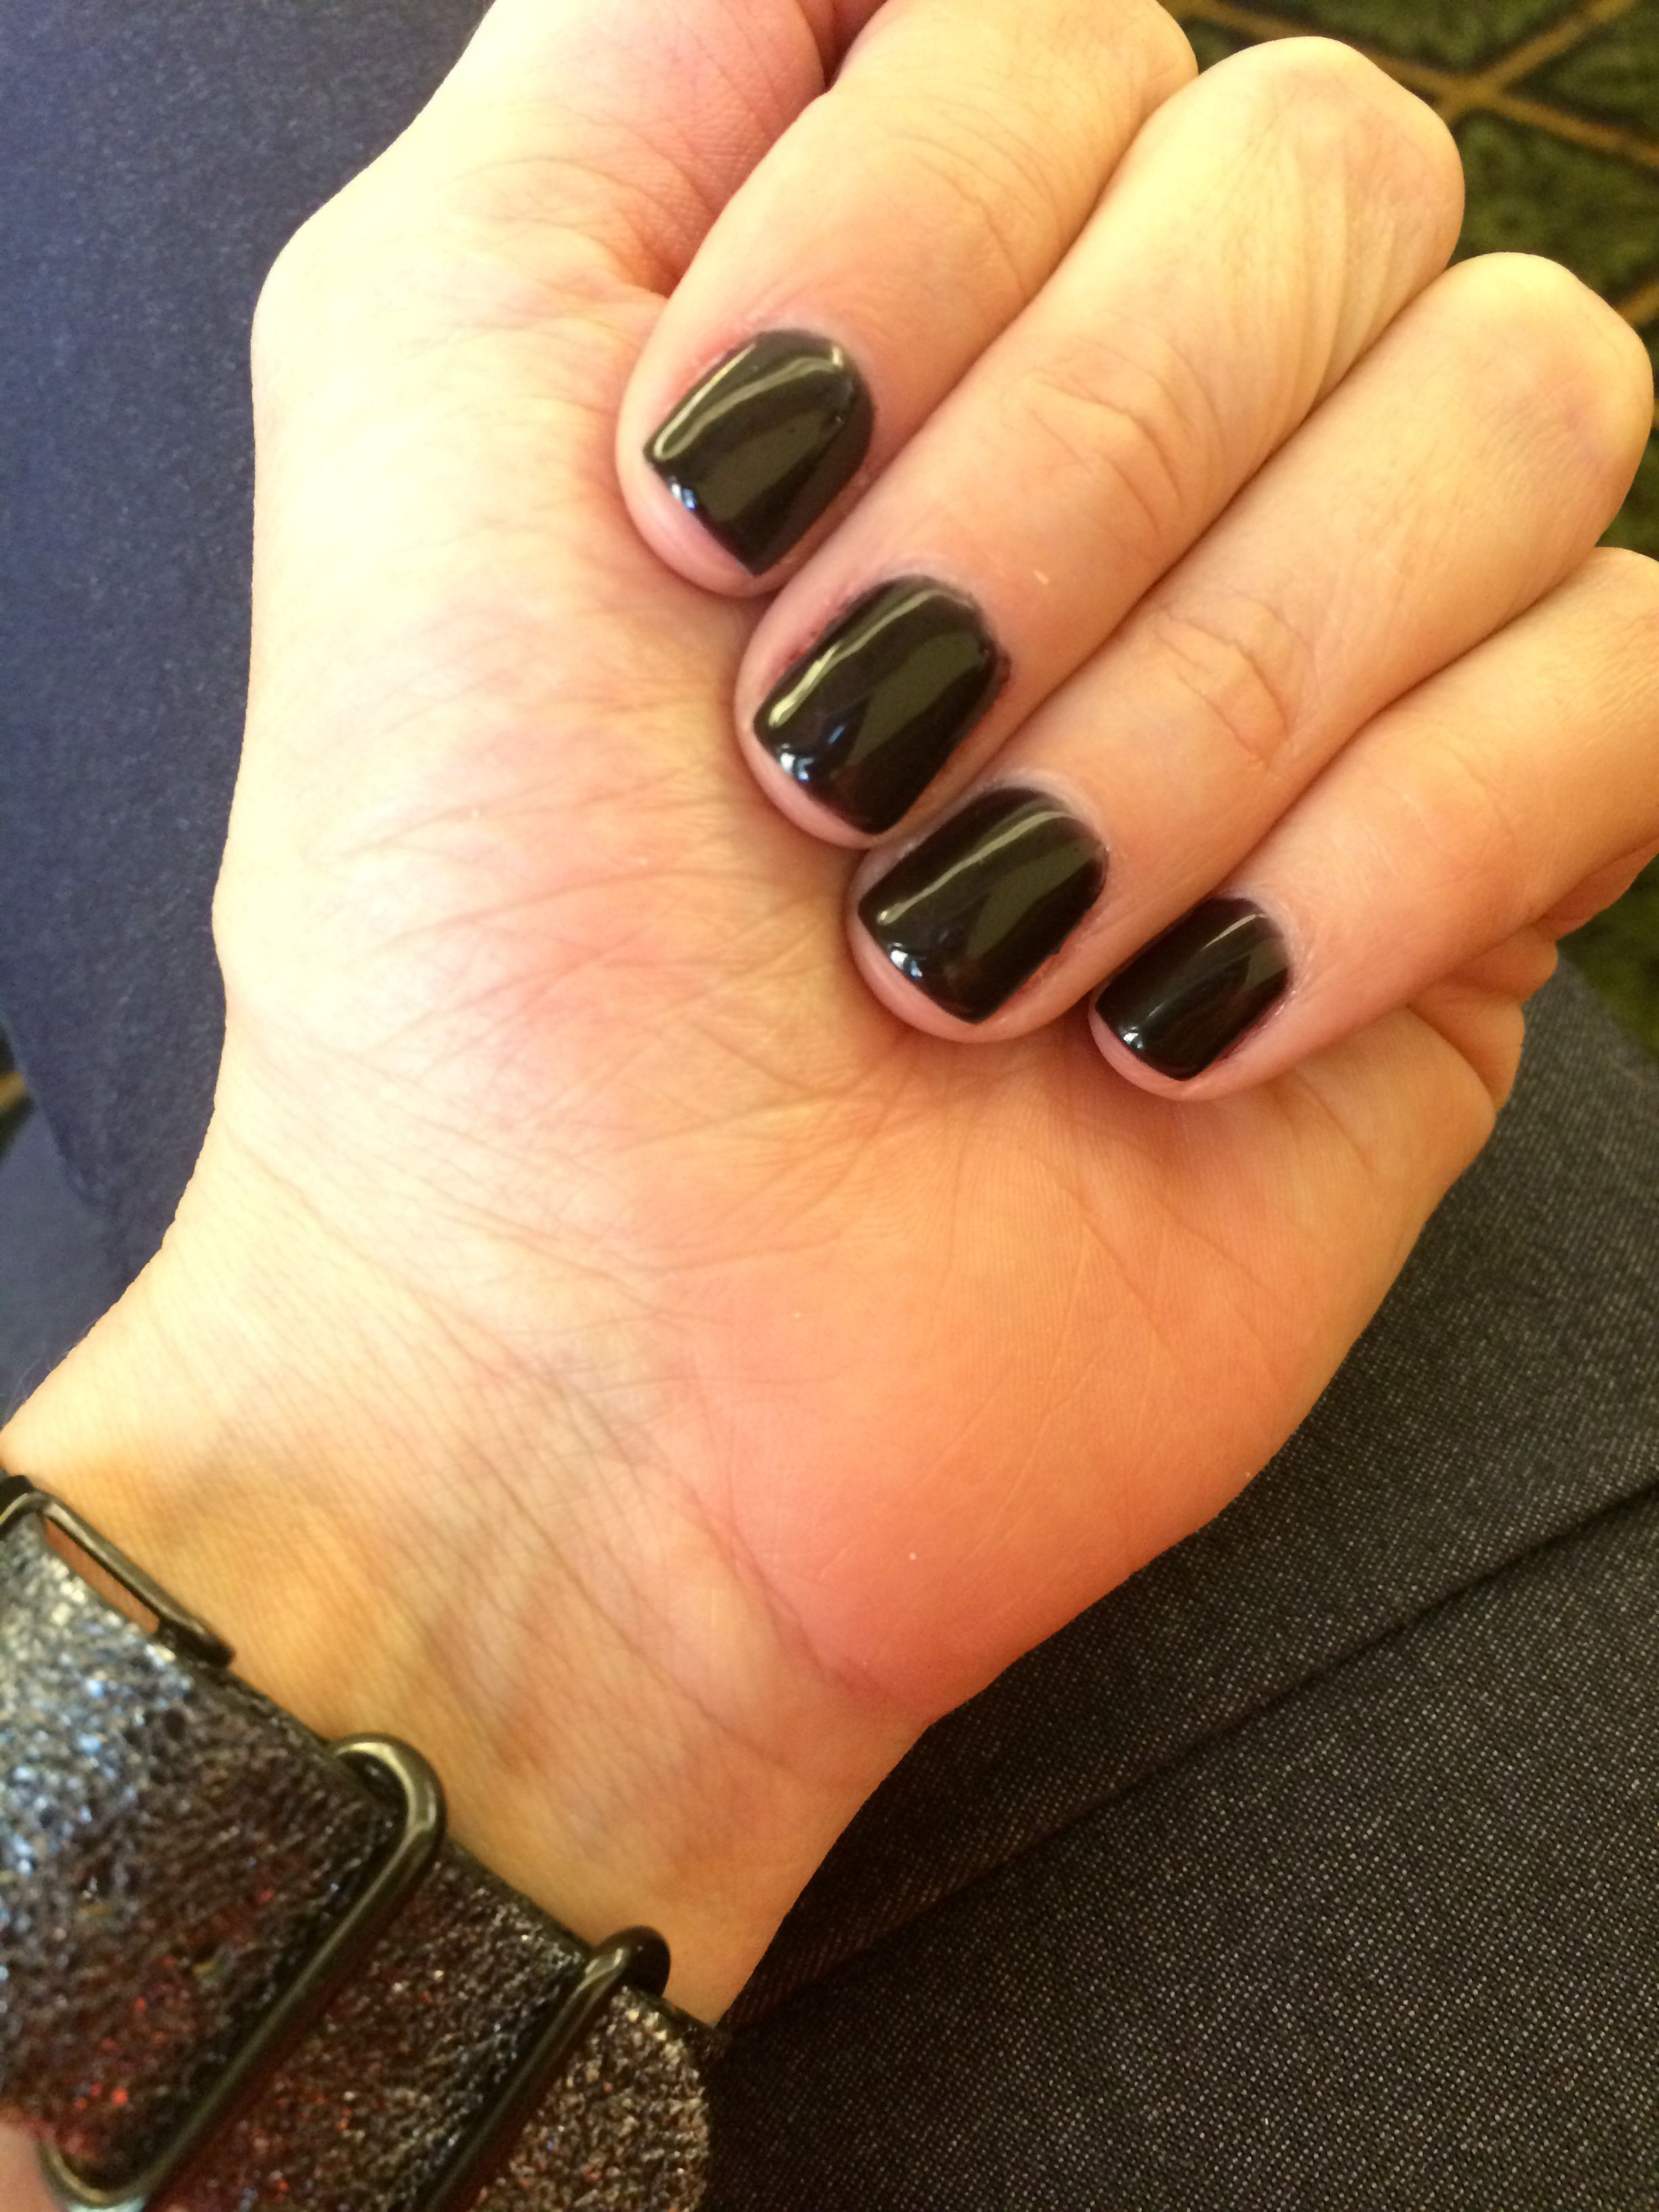 OPI Gel nail color. (Lincoln Park After Dark)! My favorite dark ...